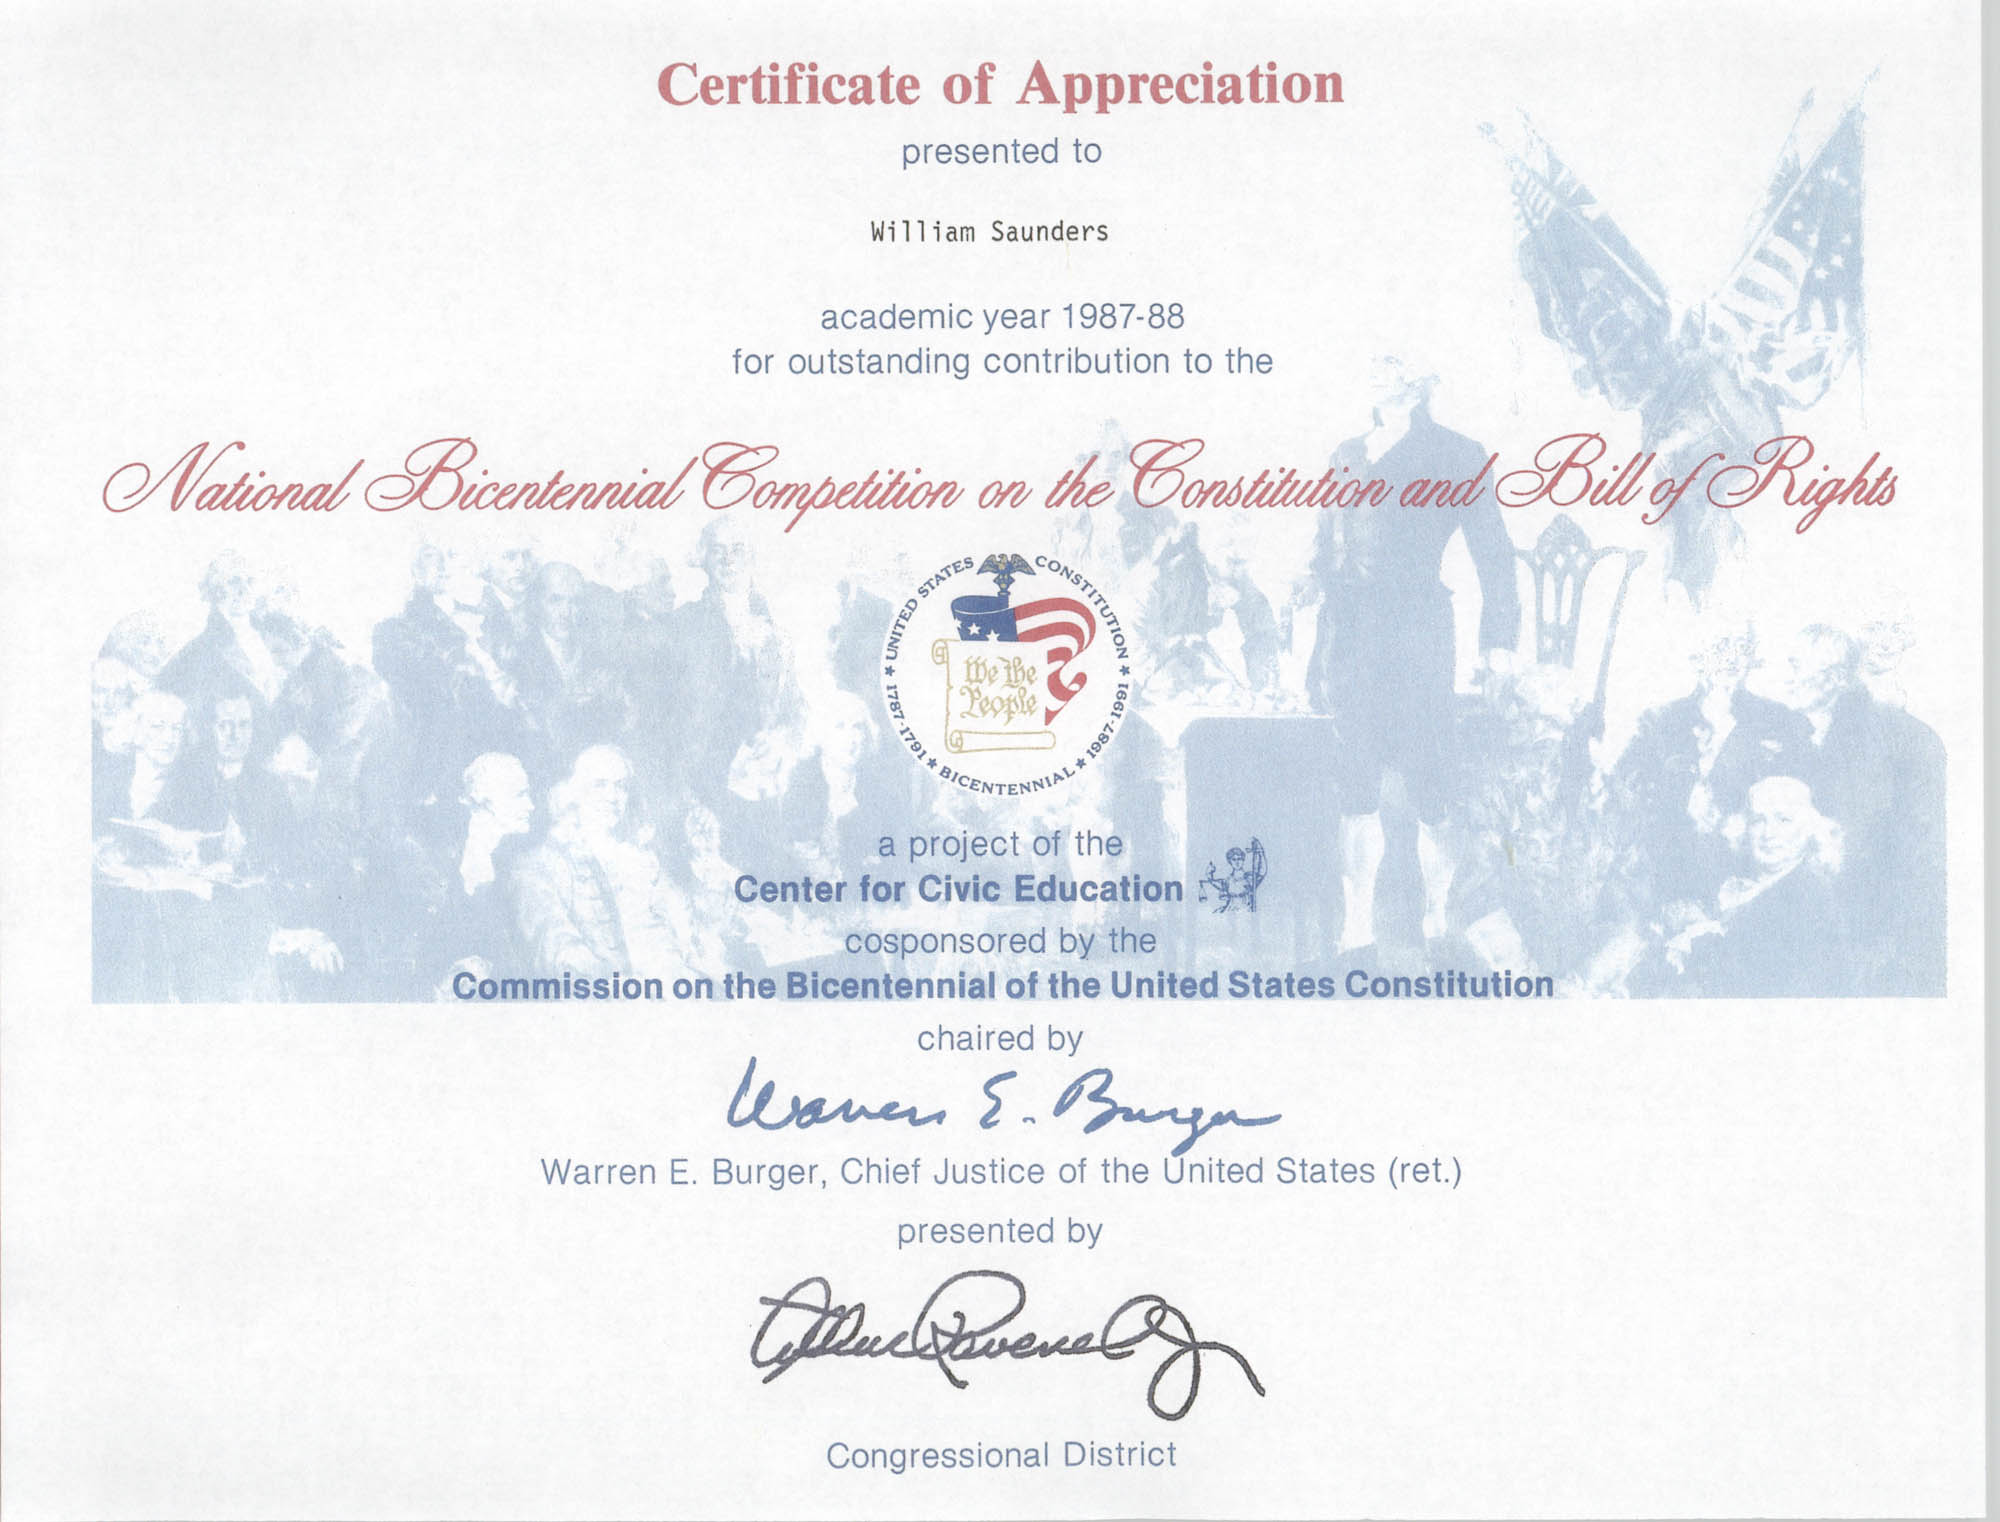 National Bicentennial Competition on the Constitution and Bill of Rights Certificate of Appreciation, William Saunders